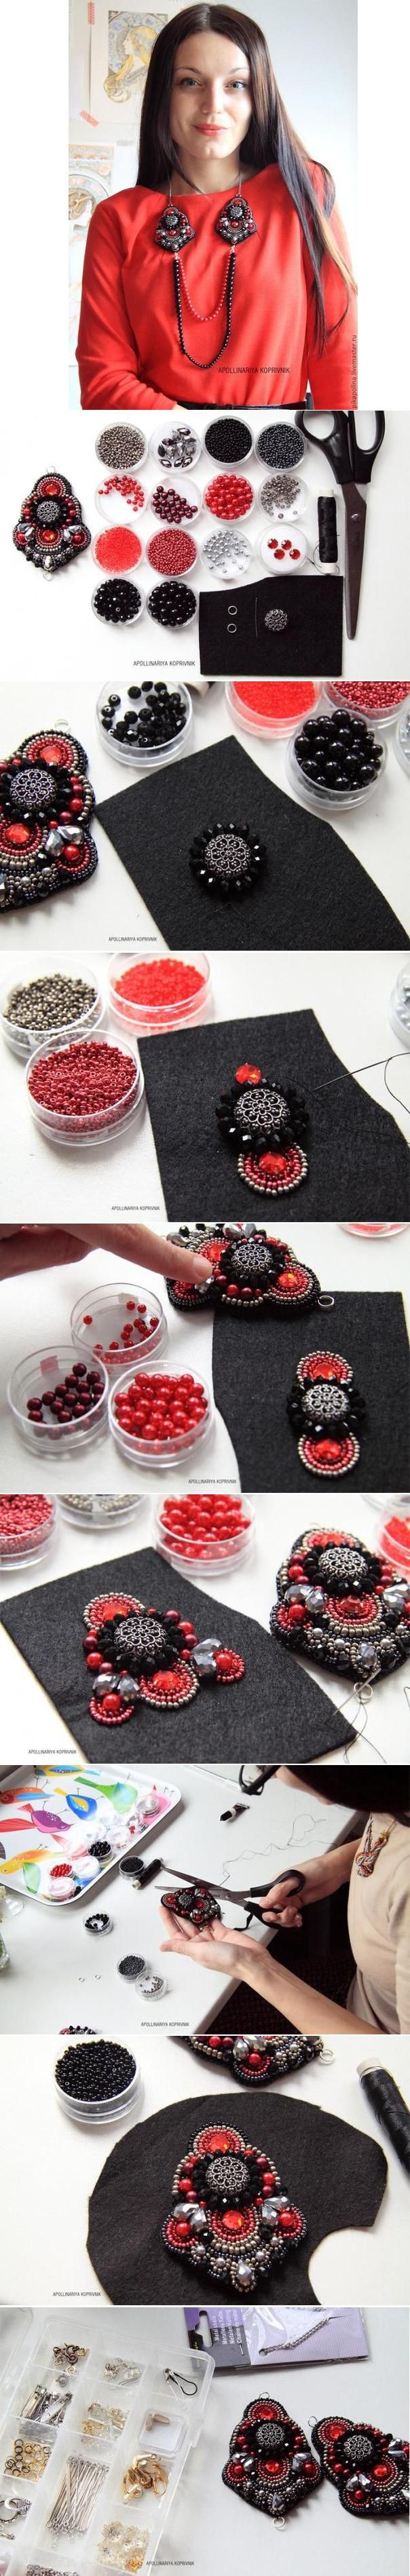 soutache tutorial - necklace  mishtiart.blogspot.com - follow me! :)